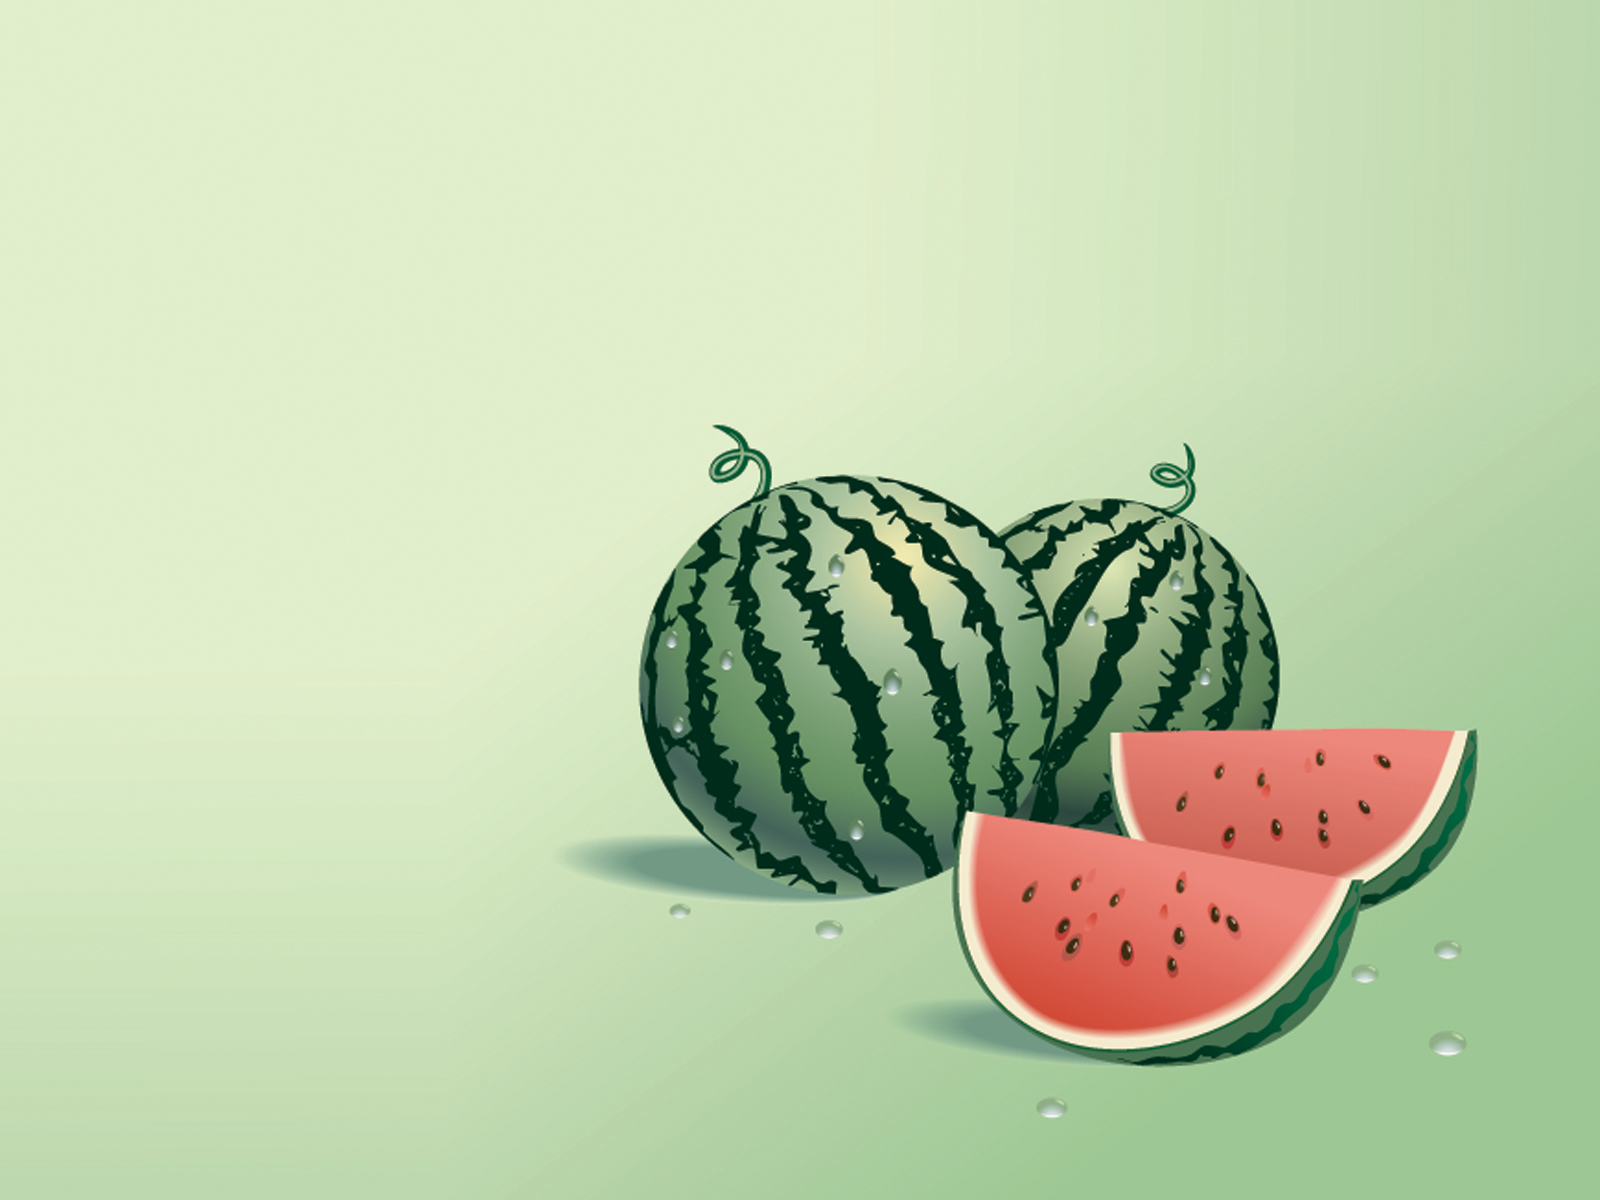 Watermelon Vector PPT Backgrounds